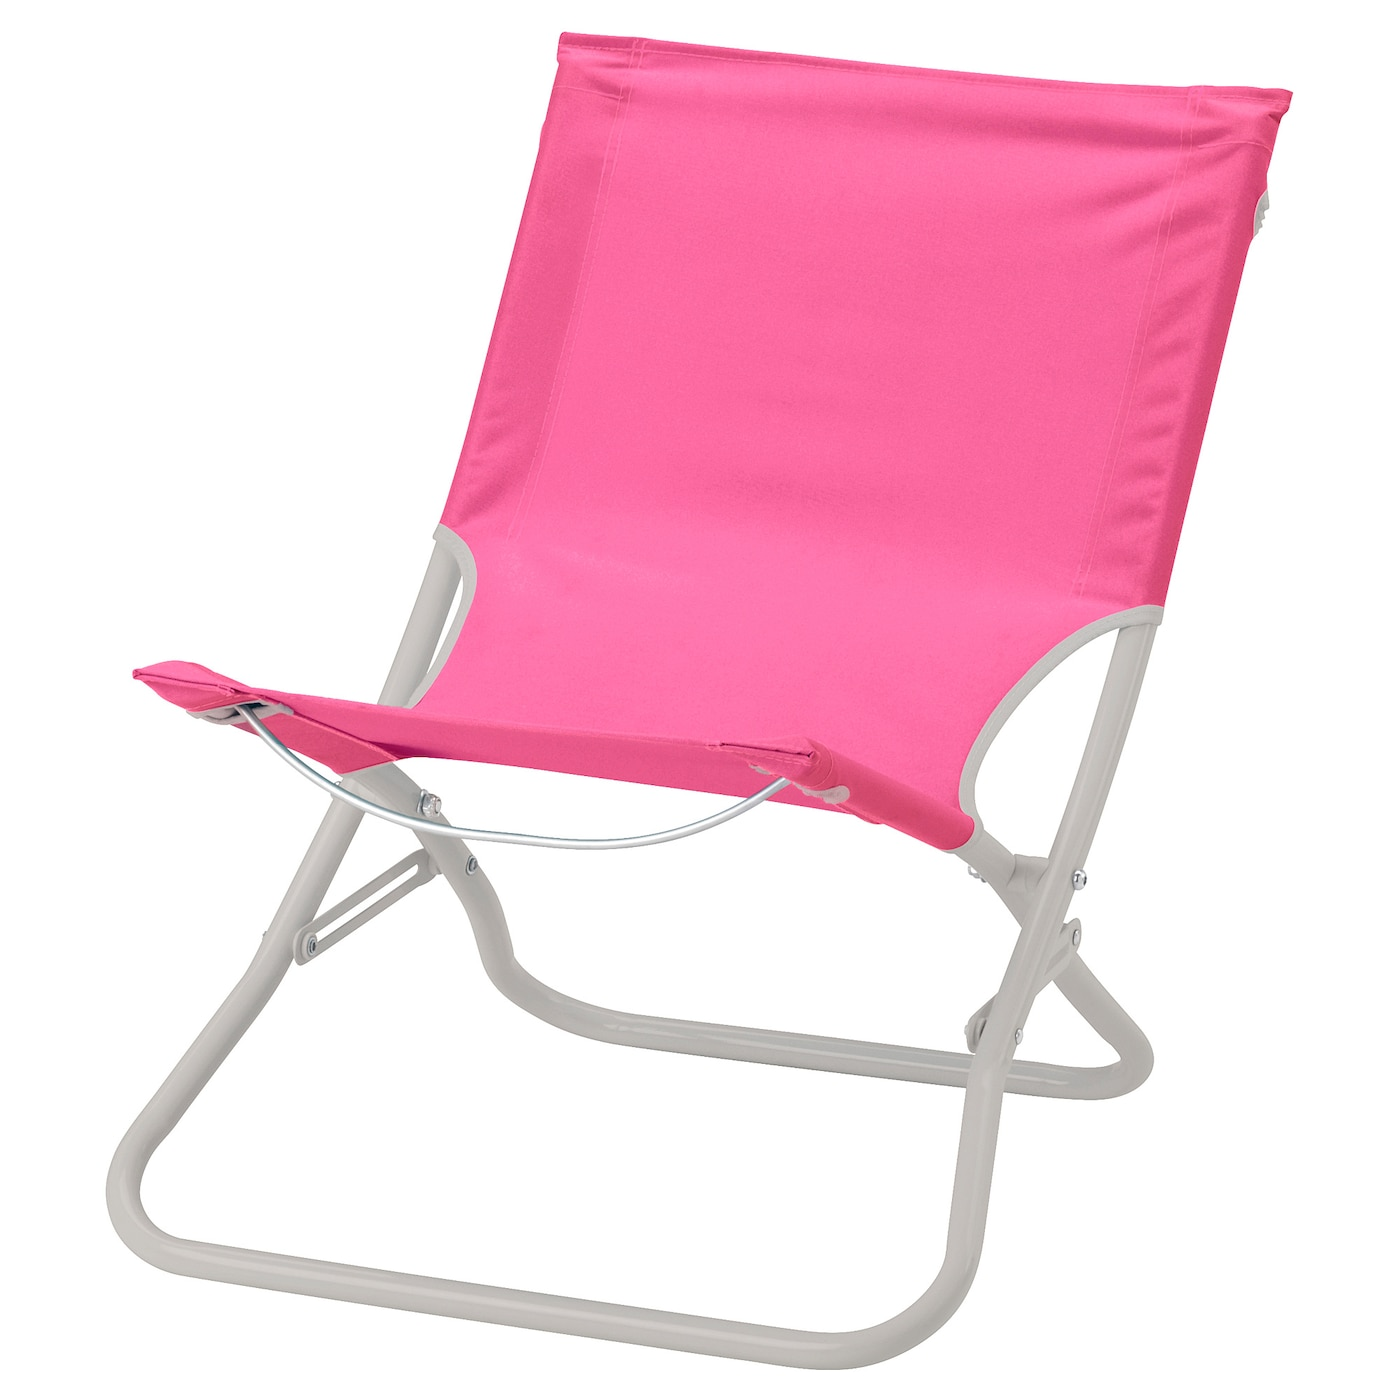 watch chairs chair youtube best beach